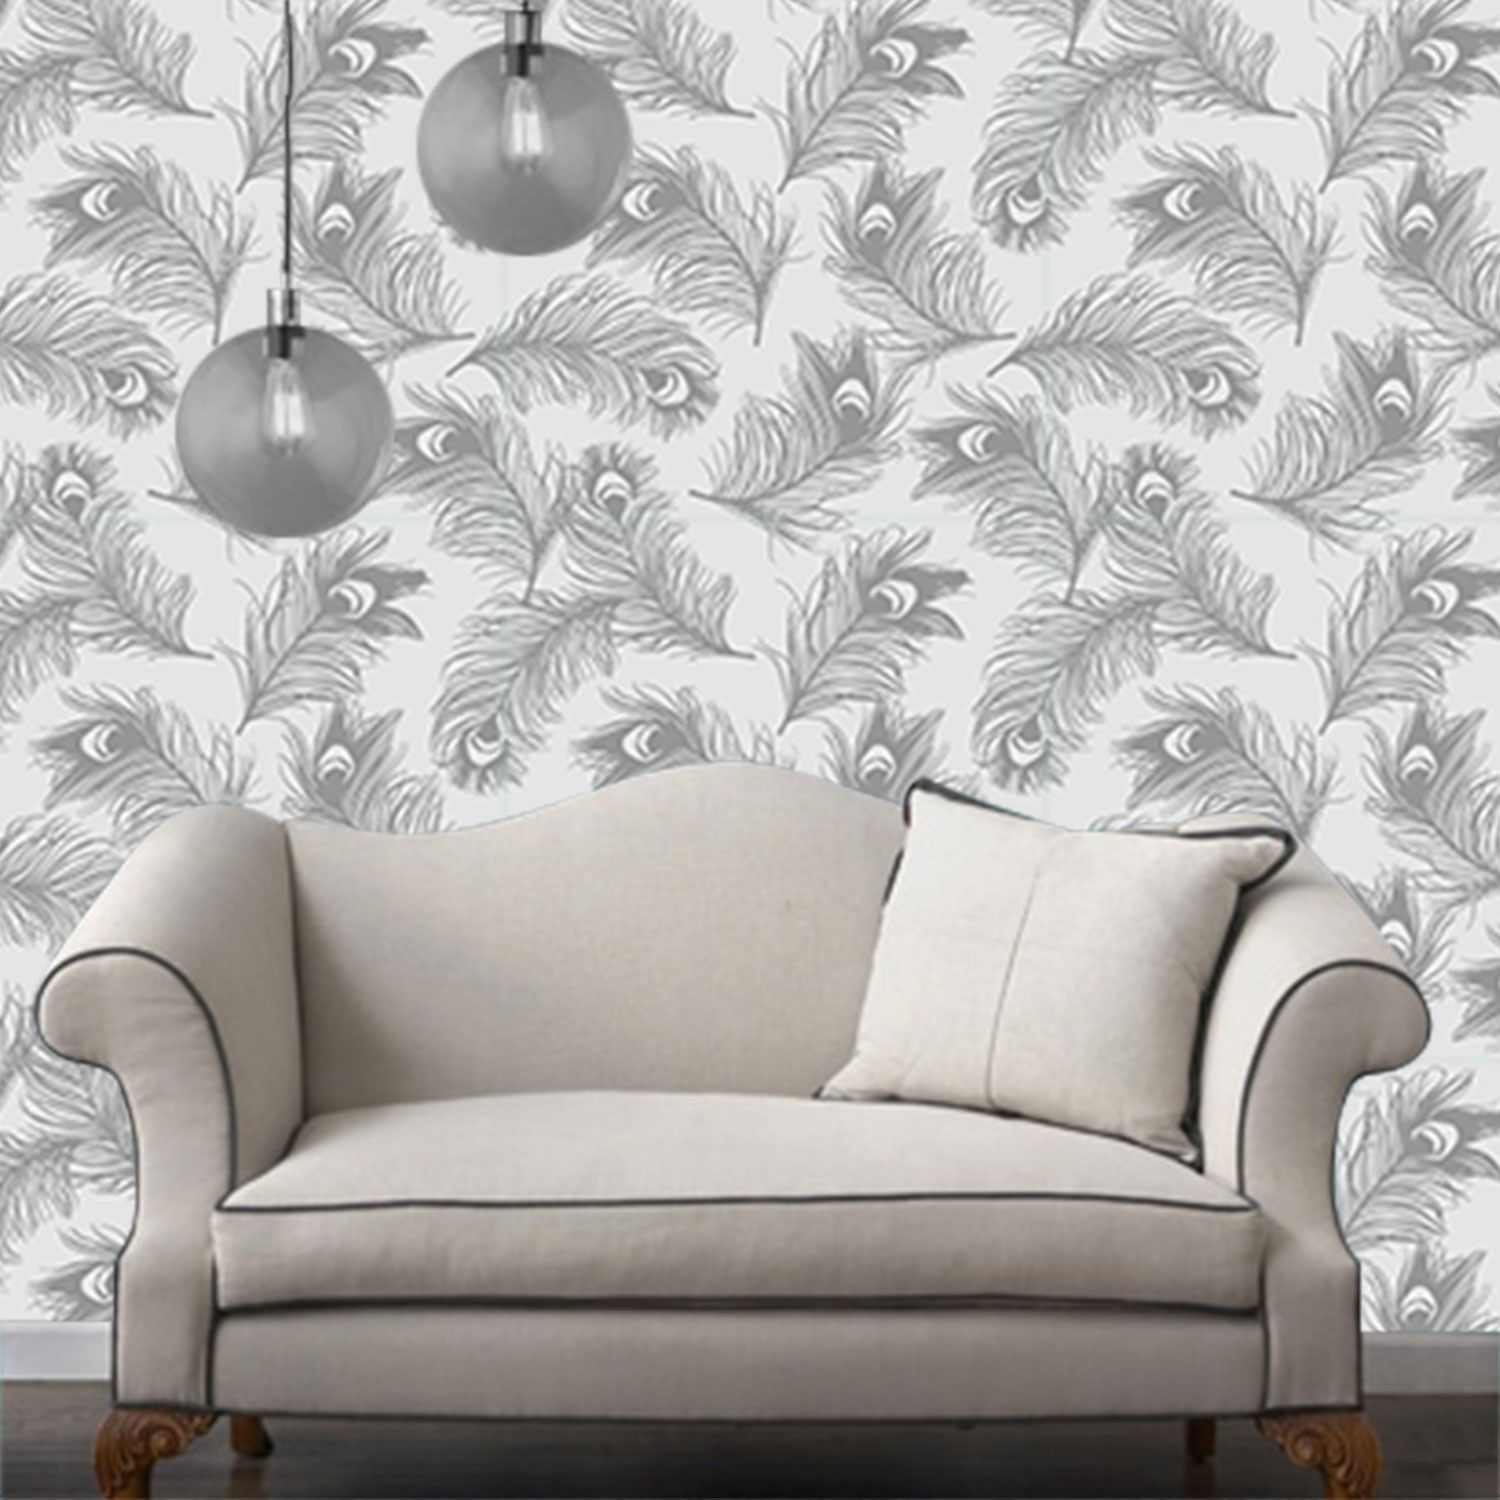 Temporary Wallpaper Feather Metallic Silver Frost